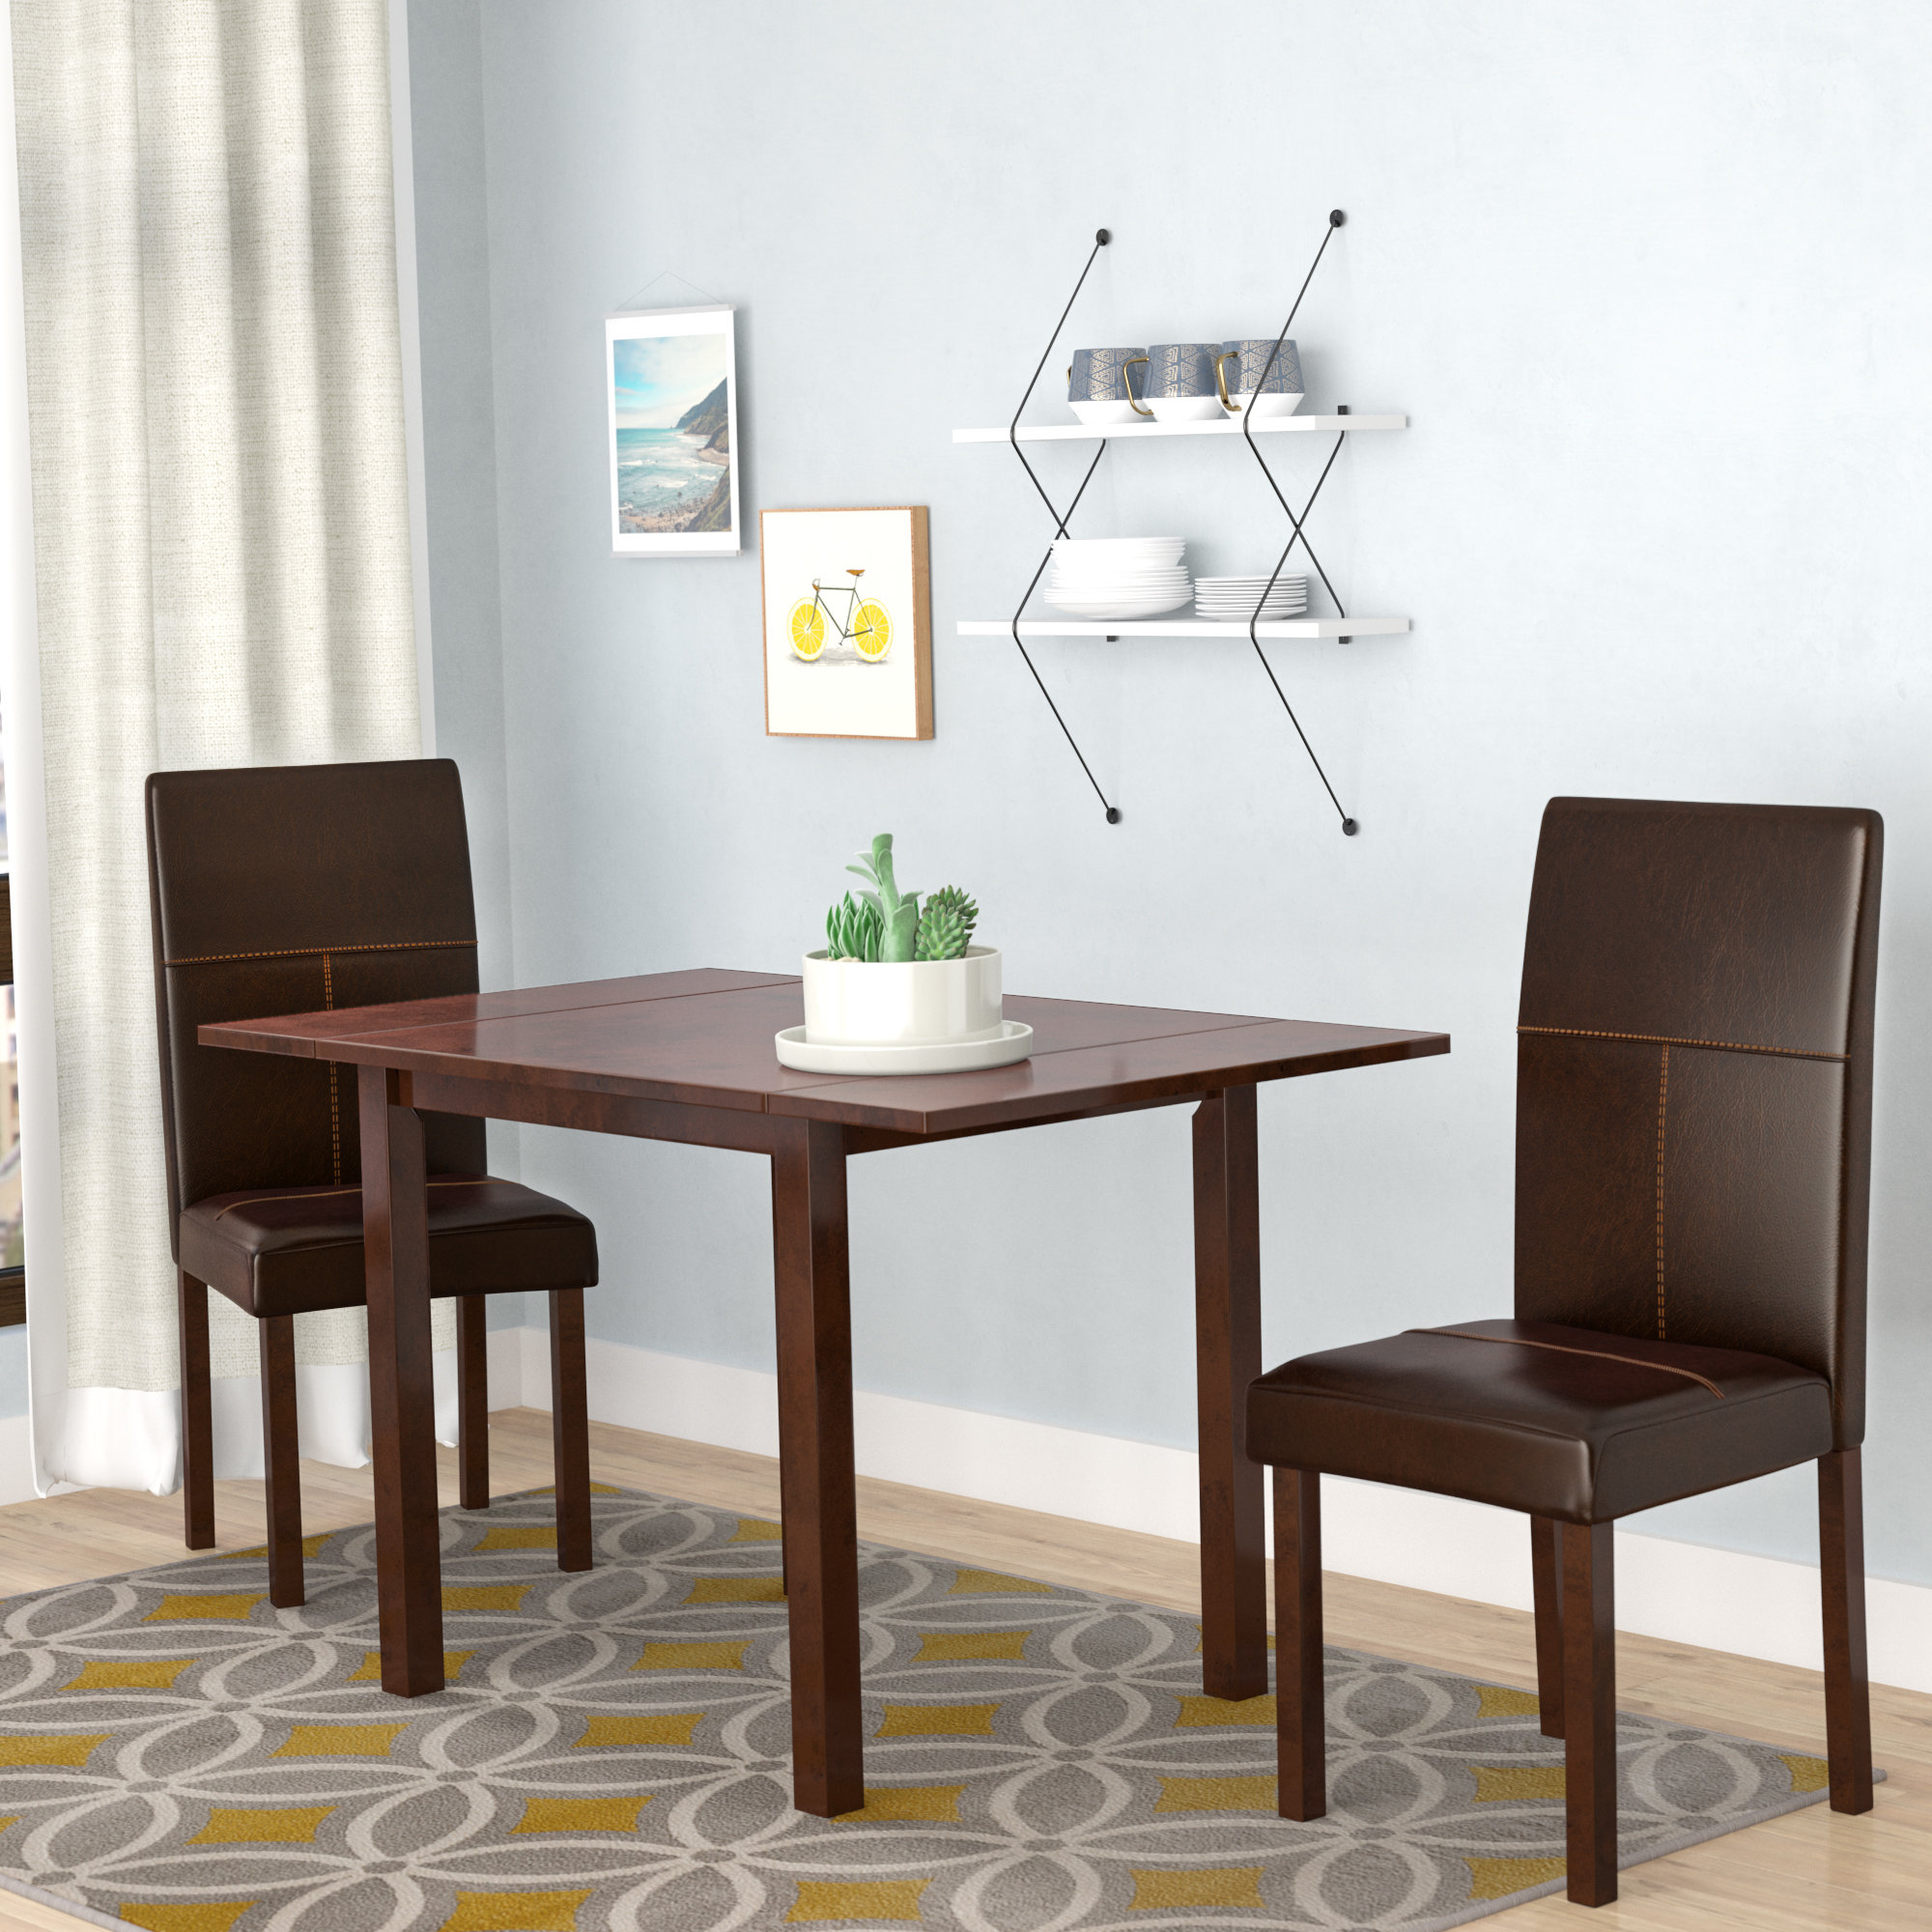 Baillie 3 Piece Dining Sets Pertaining To Well Known Lorenzen 3 Piece Dining Set (Gallery 4 of 20)